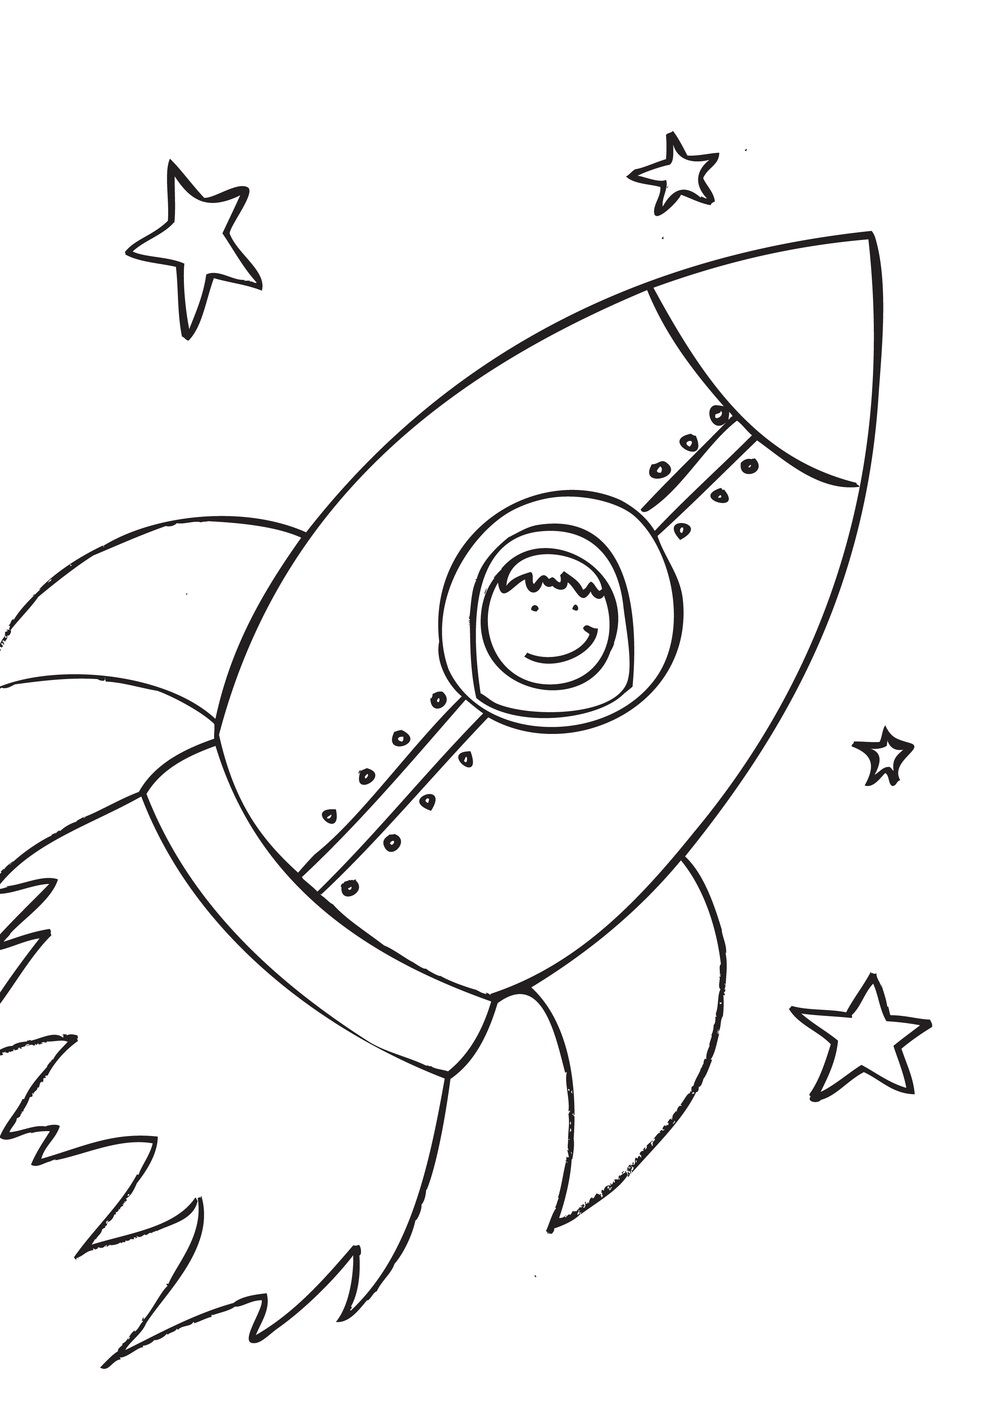 Pin On Rocket Coloring Book